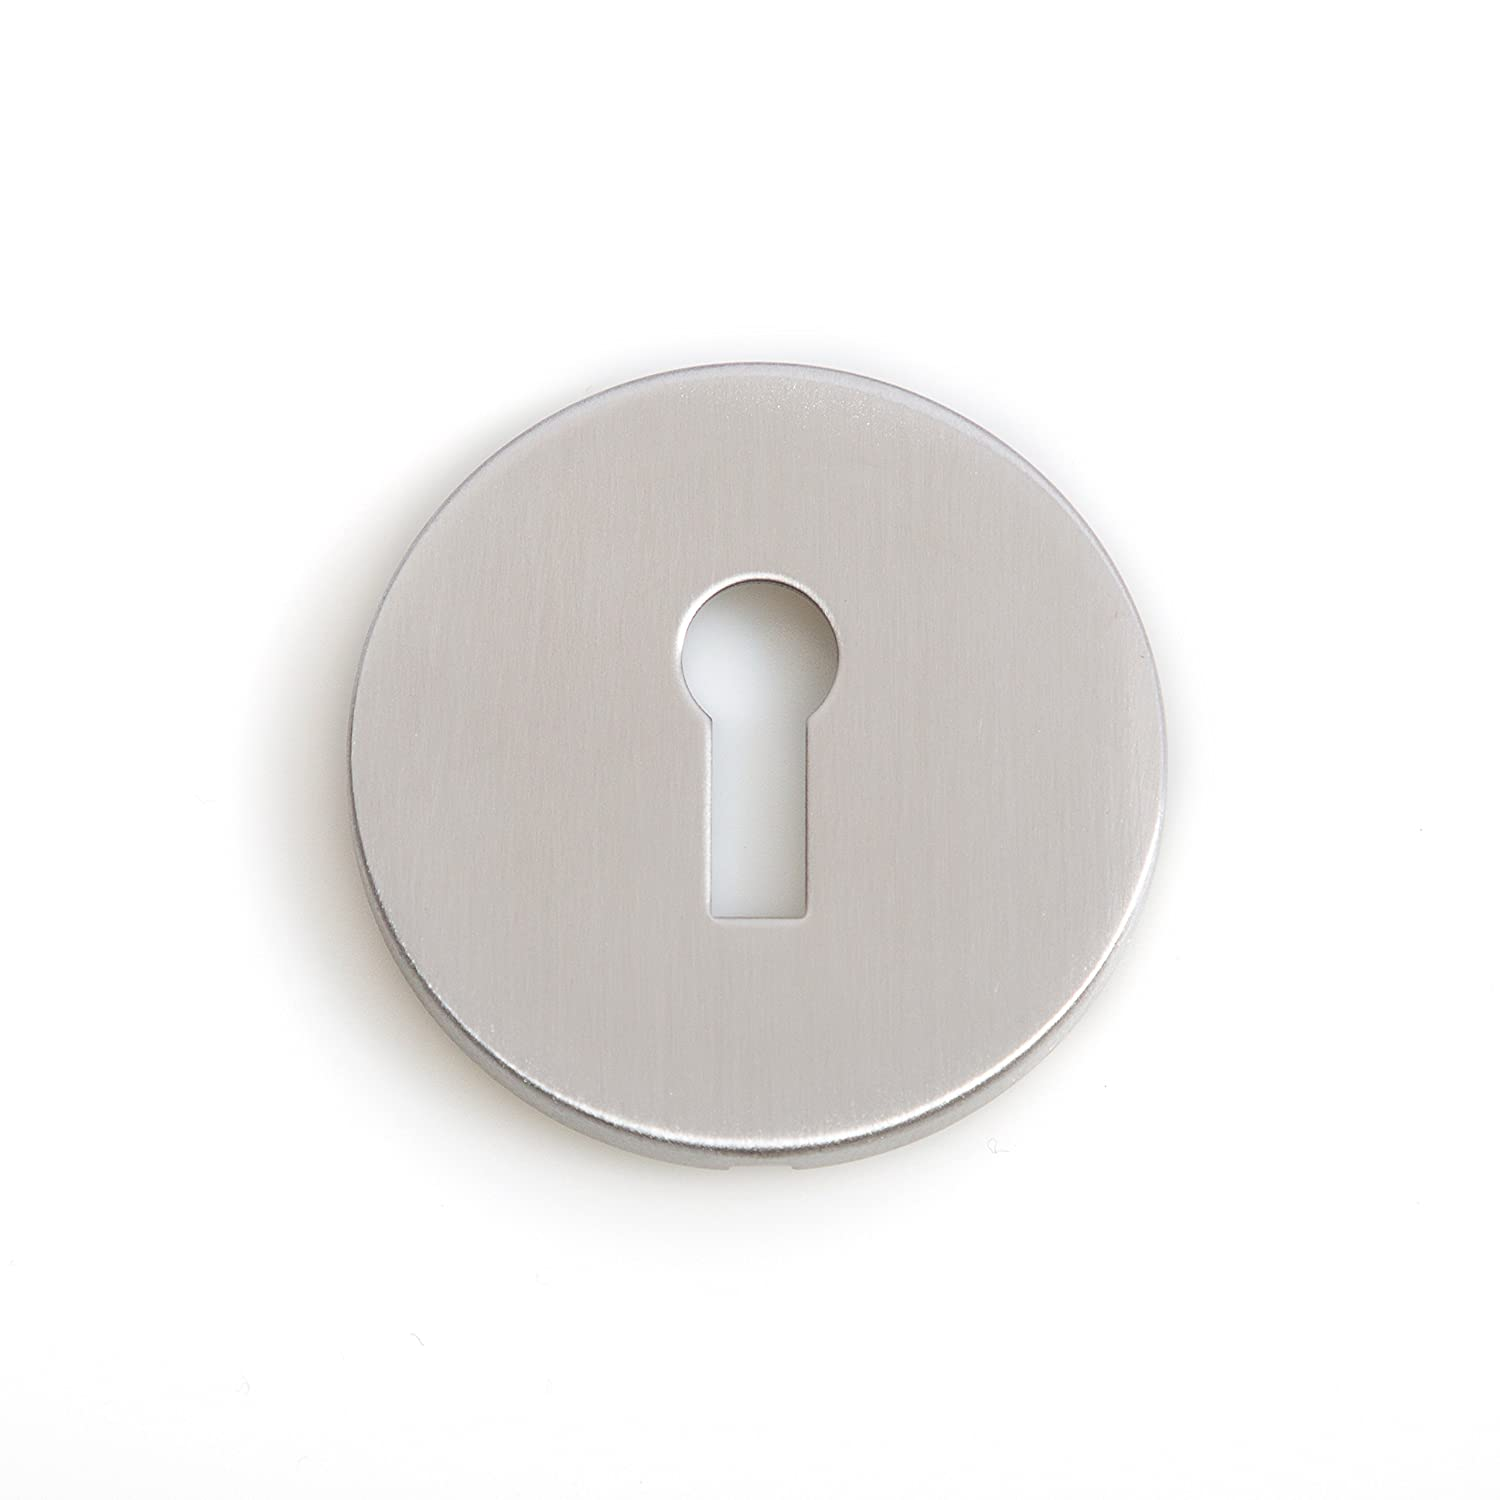 50mm STAINLESS STEEL ESCUTCHEON Key Hole Cover Keyway Profile EASY FIT PLATE Go Door Handle